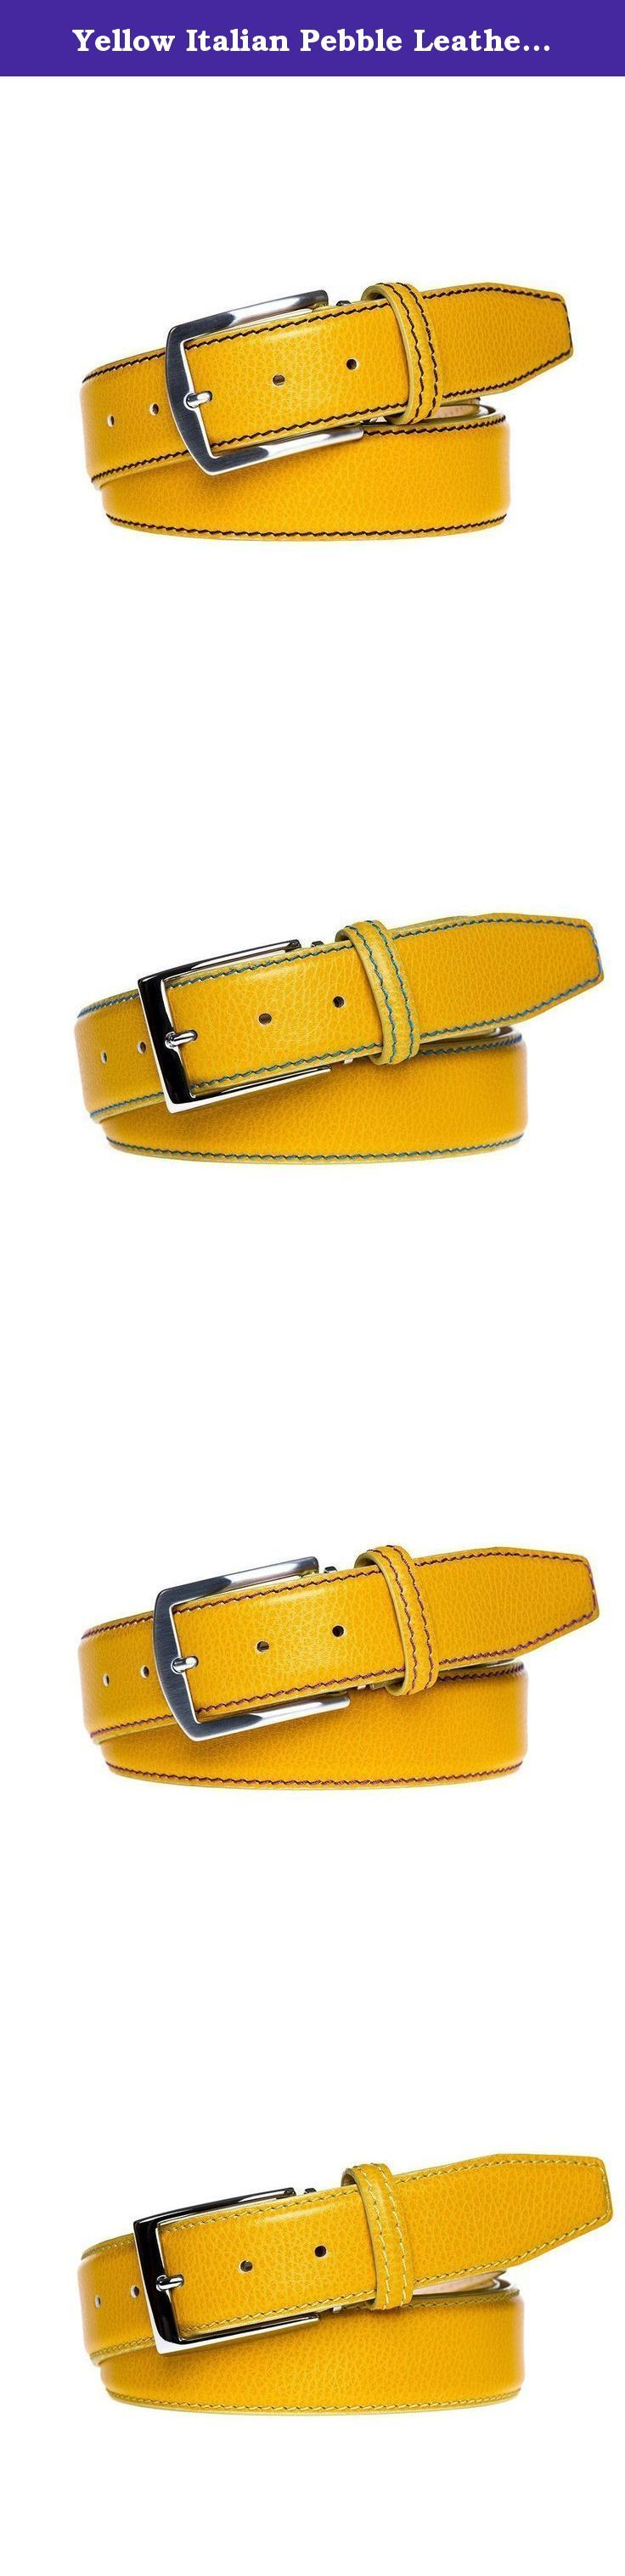 Yellow Italian Pebble Leather Belt. Made from 100% Italian Calf Leather and handmade to order. All of our leather products are made in the USA. Each belt is designed with a Nubuck lining and solid brass palladium buckle to ensure extra durability. In addition, each belt comes with a signature travel bag to store your belt in.